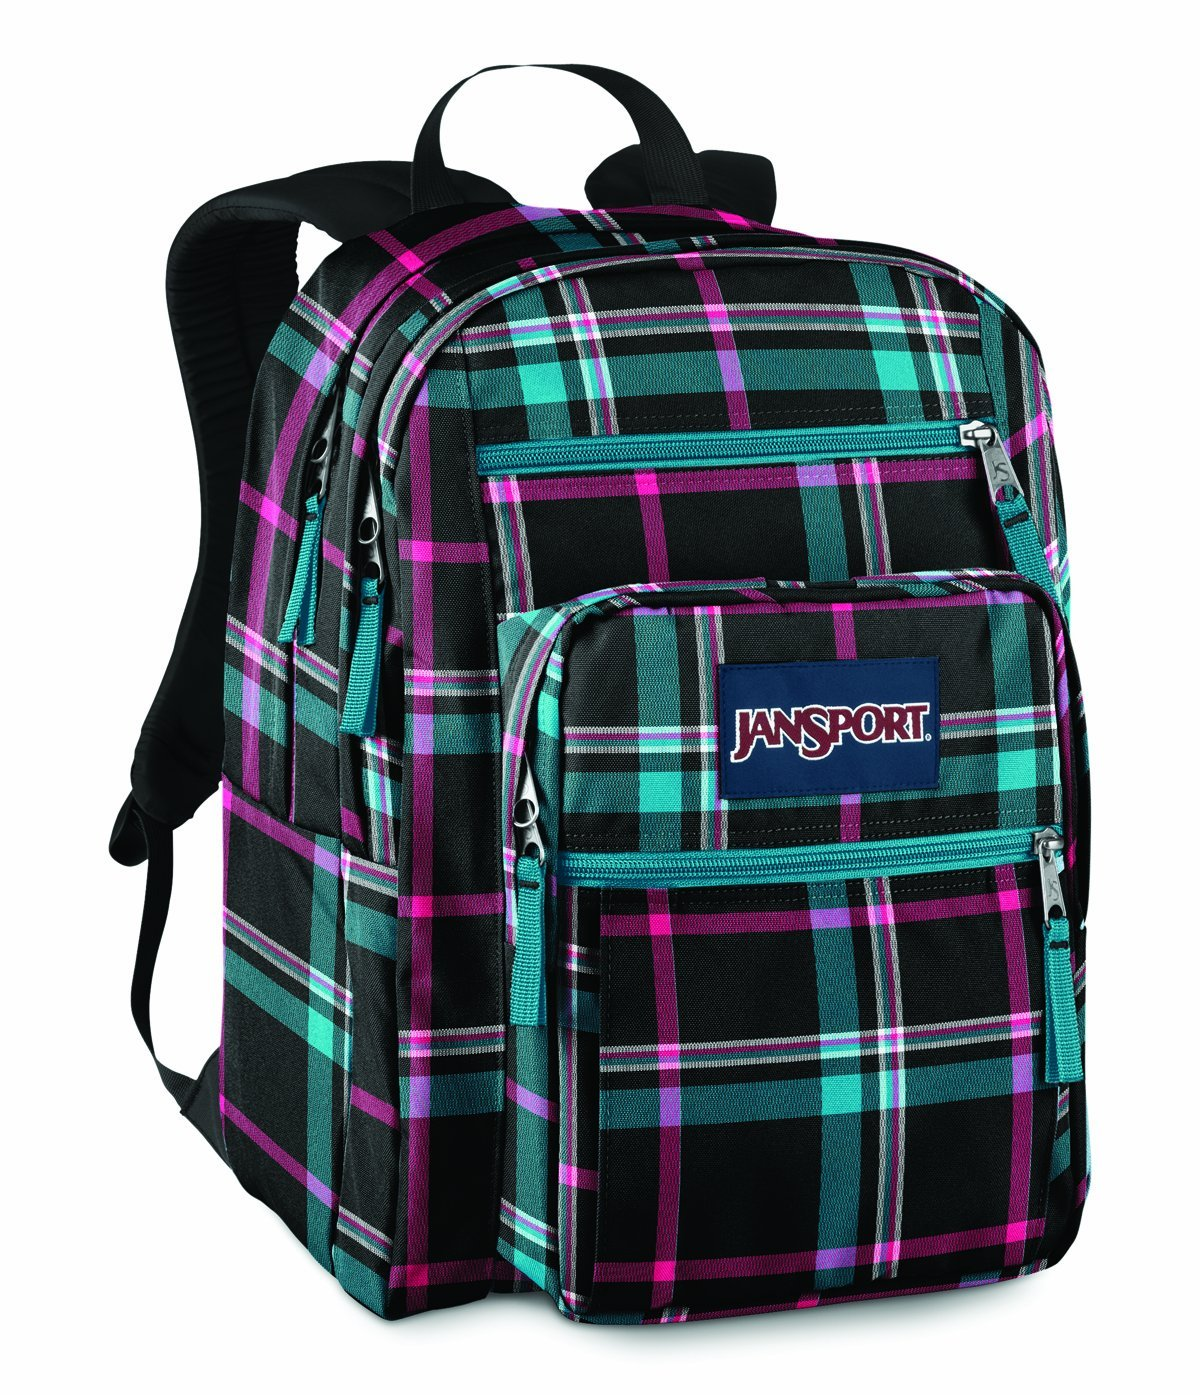 Awesome Jansport Backpacks Met9k8lG